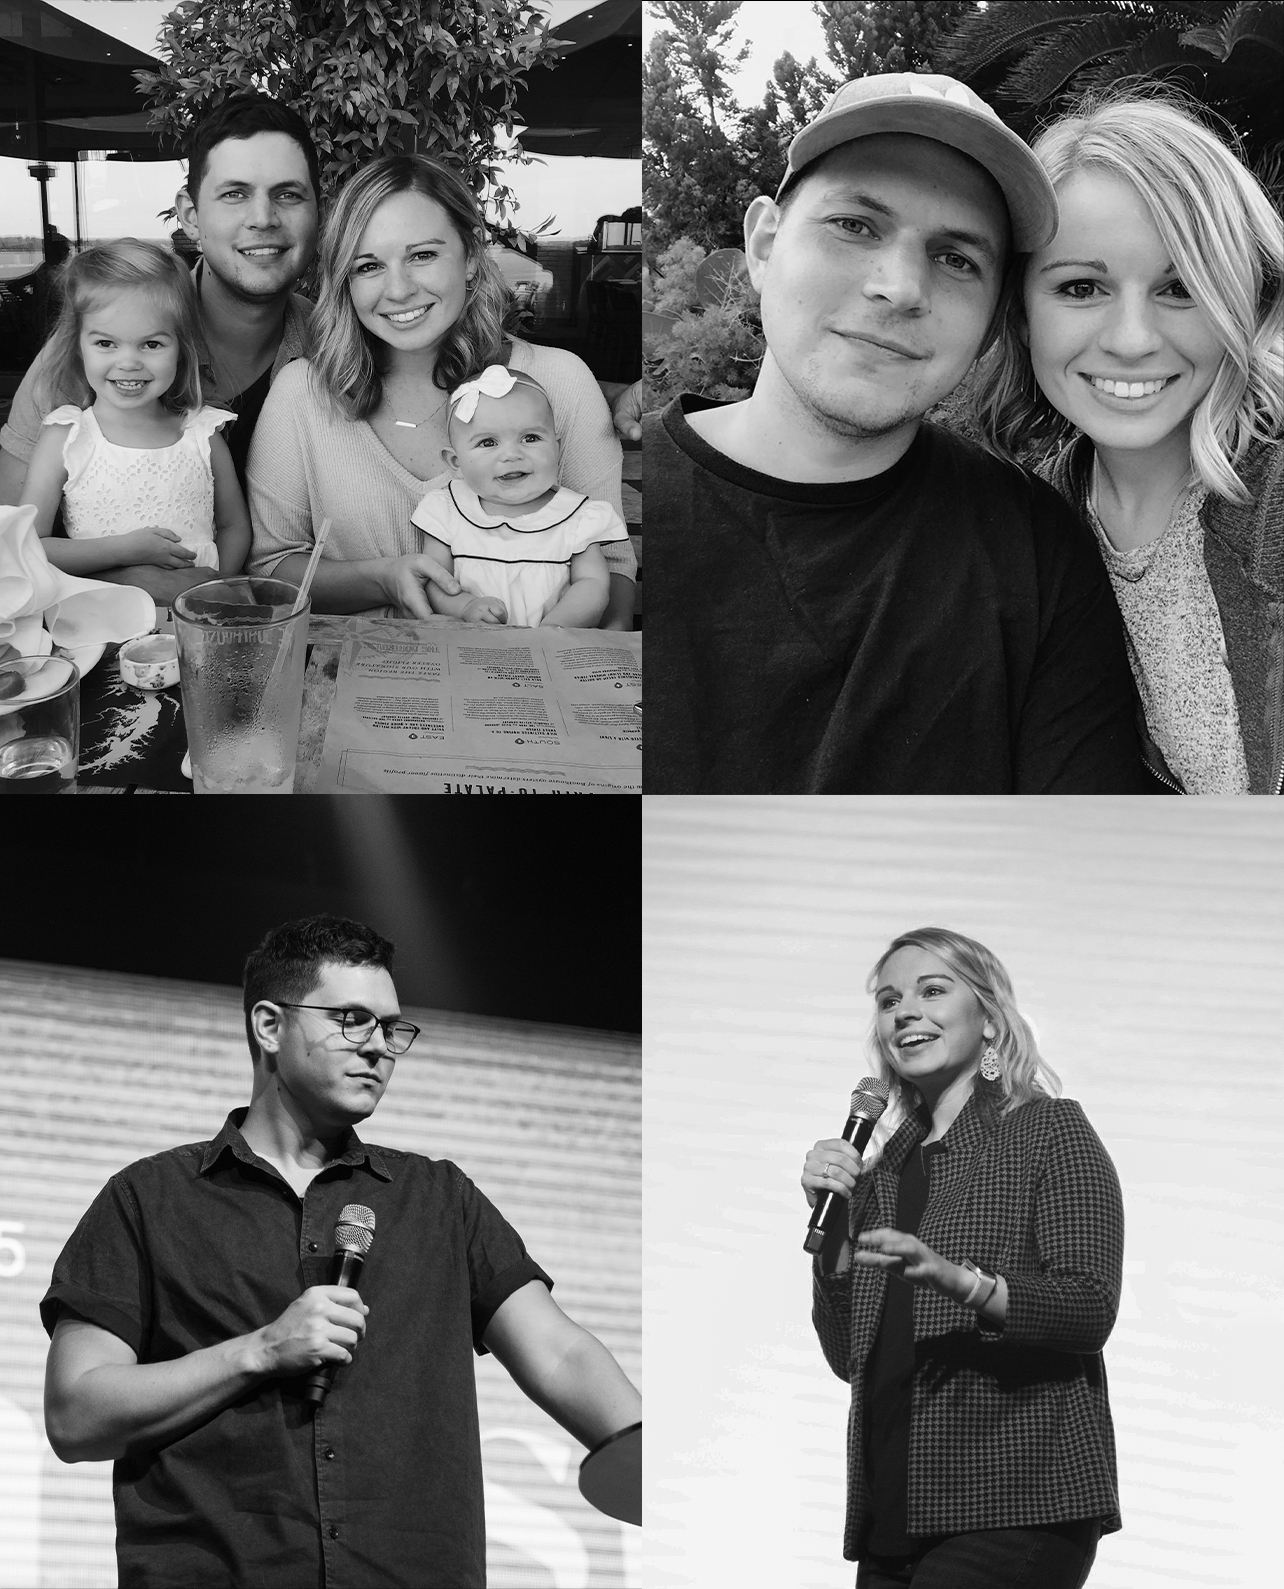 A 4 photo collage of LIFE CO. pastors Kyle and Kenzie. The top photos are of their family together, and the bottom images are Kyle and Kenzie speaking at LIFE CO.